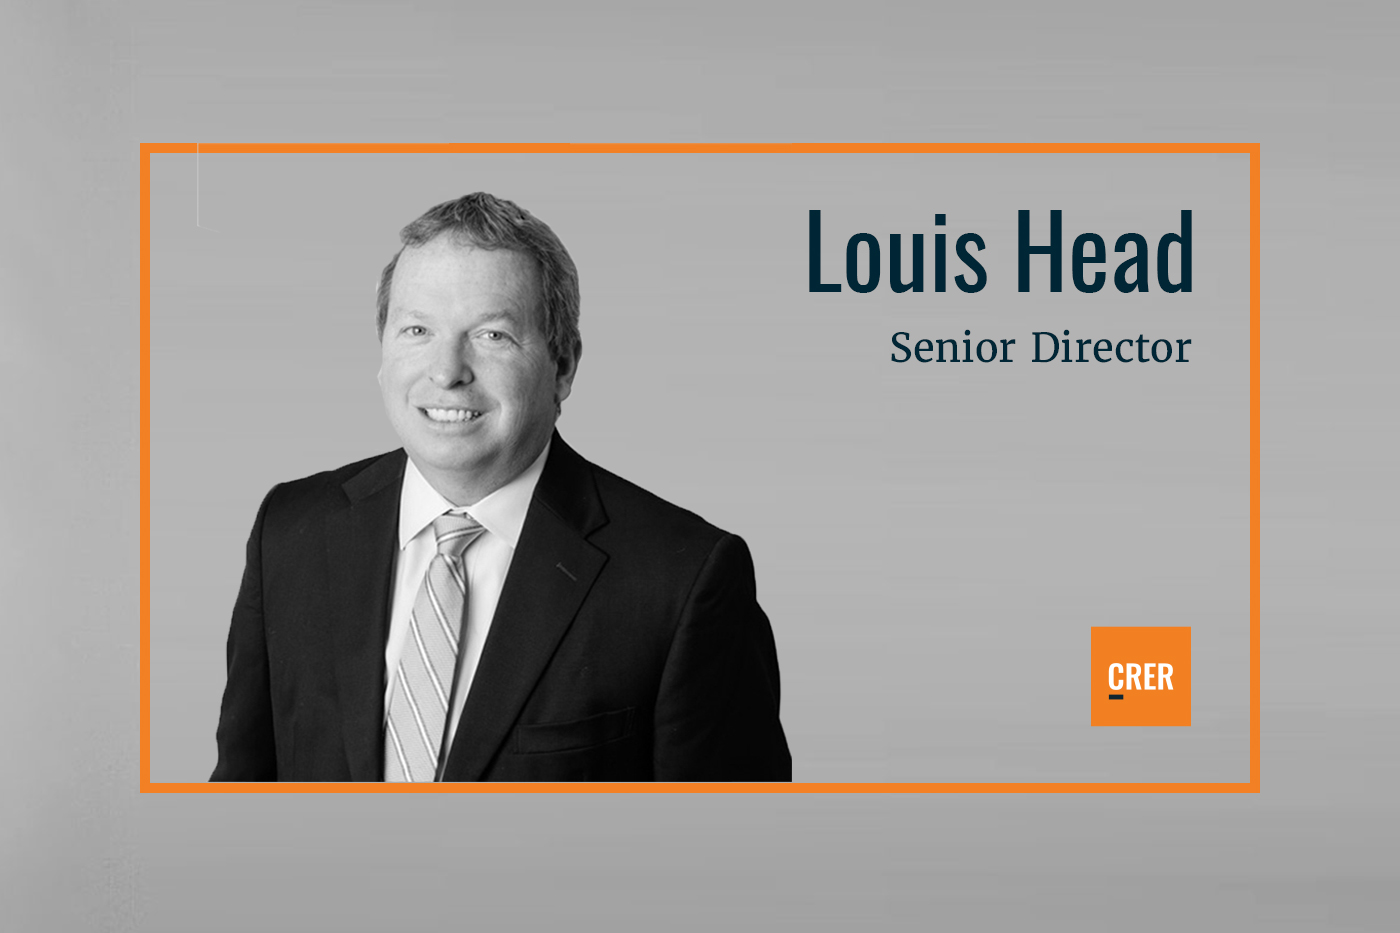 Louis Head Joins CRER